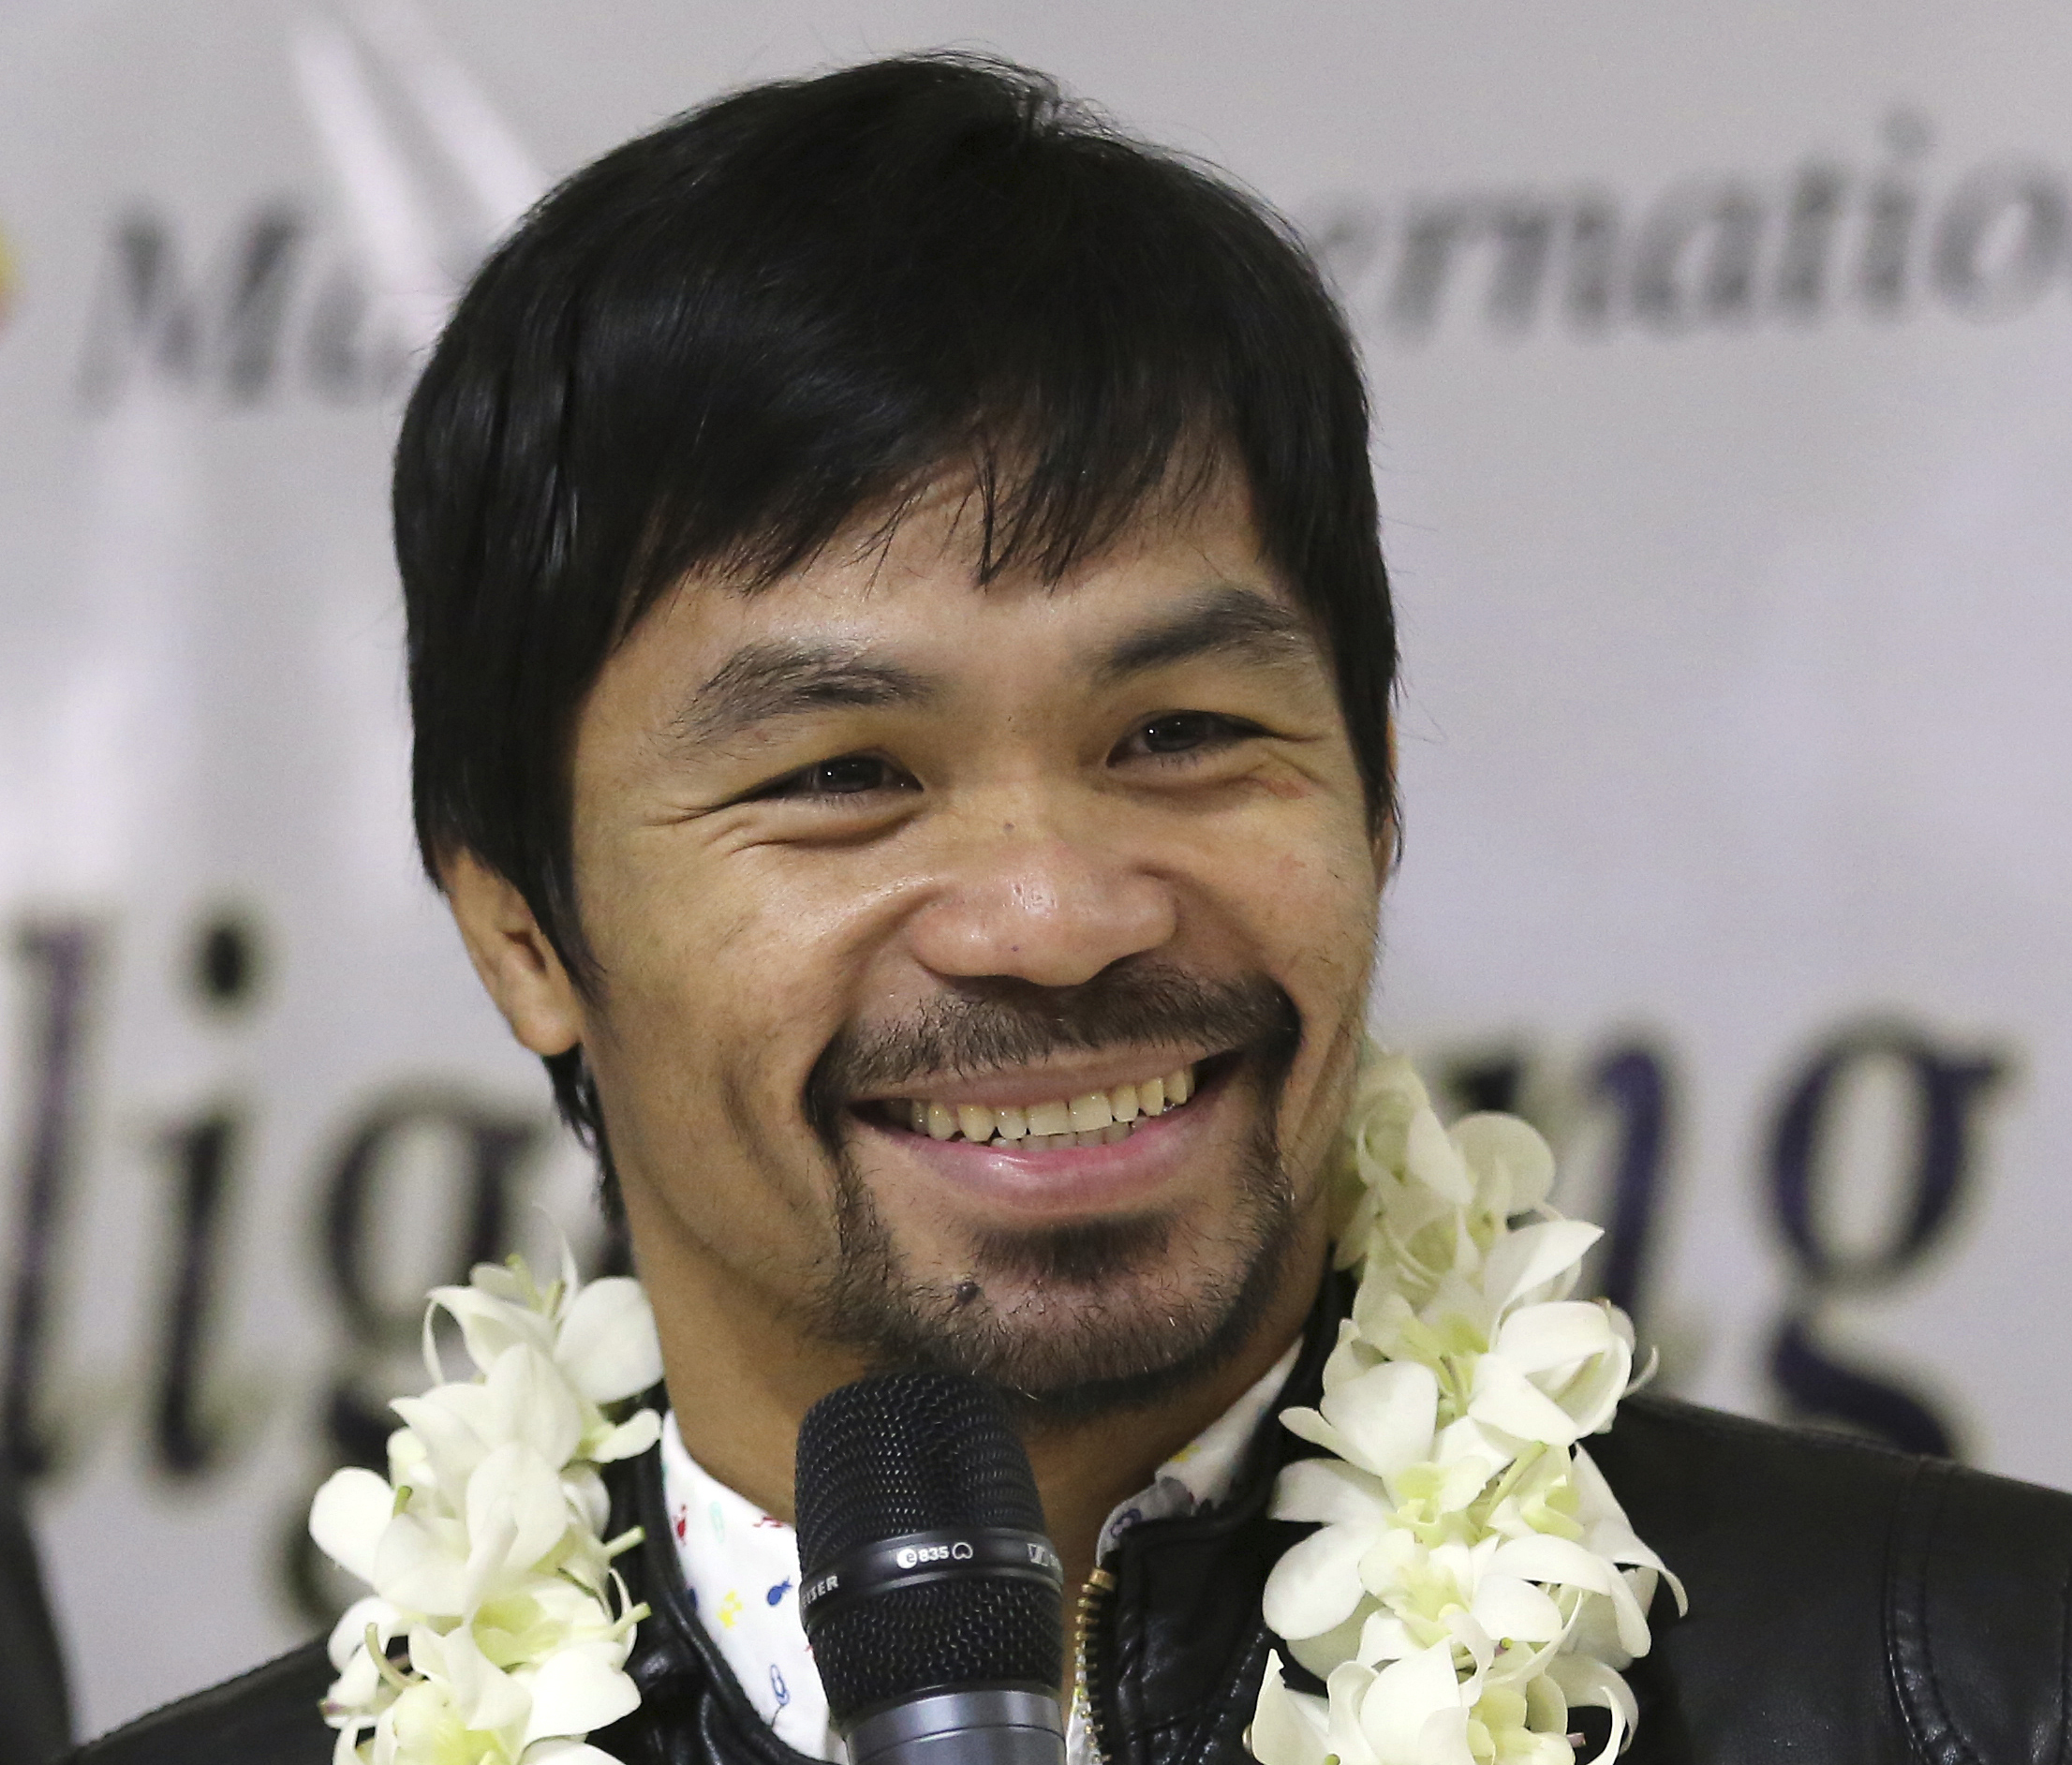 Is Pacquiao ready to give up lucrative Mayweather rematch to be full-time senator?